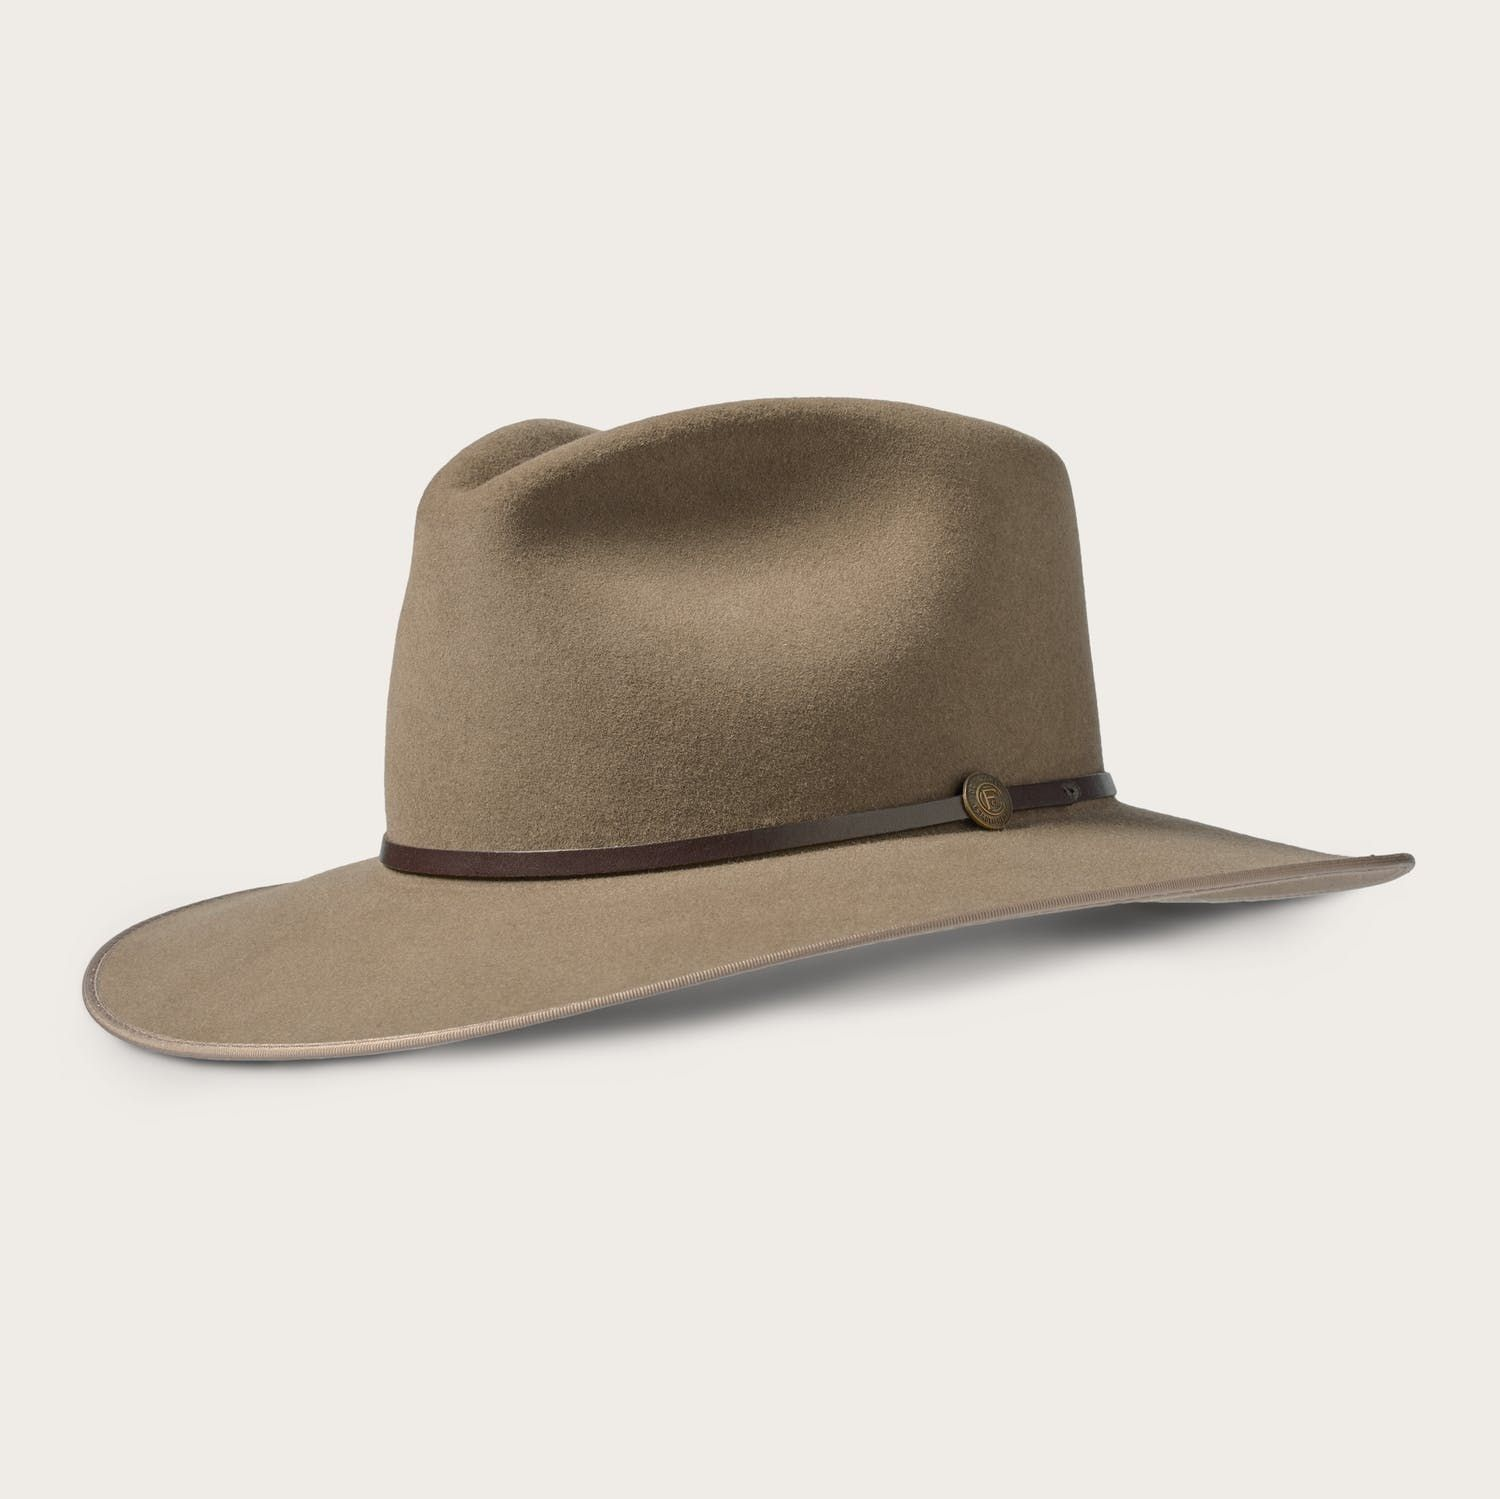 9f5f3ccbf205b x Stetson Wolf Canyon Hat in 2019